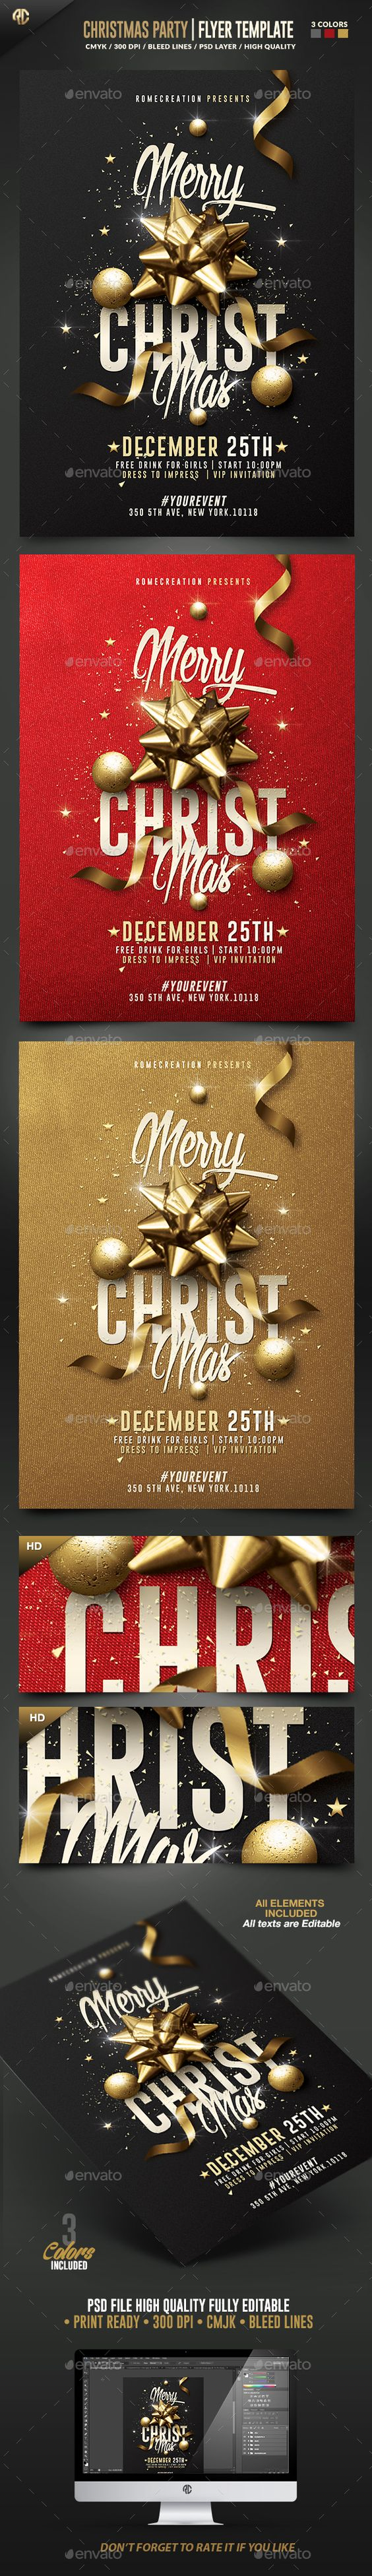 classy christmas party psd flyer template christmas parties classy christmas party flyer template psd design graphicriver